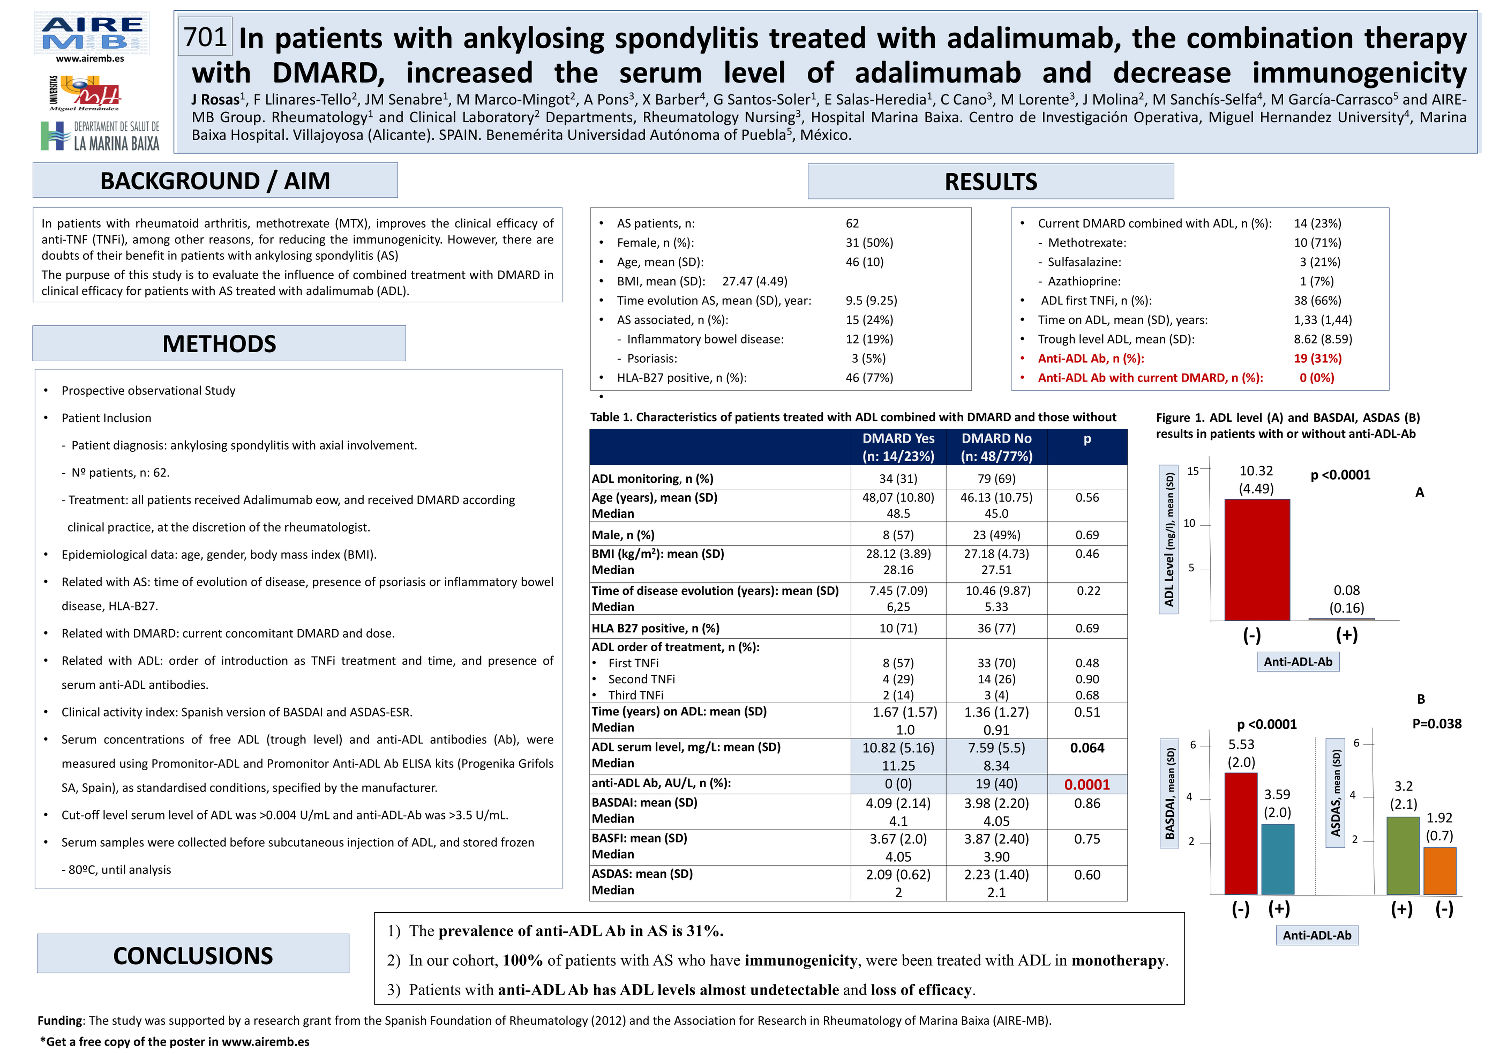 In Patients with Ankylosing Spondylitis Treated with Adalimumab, Combination Therapy with DMARD, Increase the Serum Level of Adalimumab and Decrease Immunogenicity